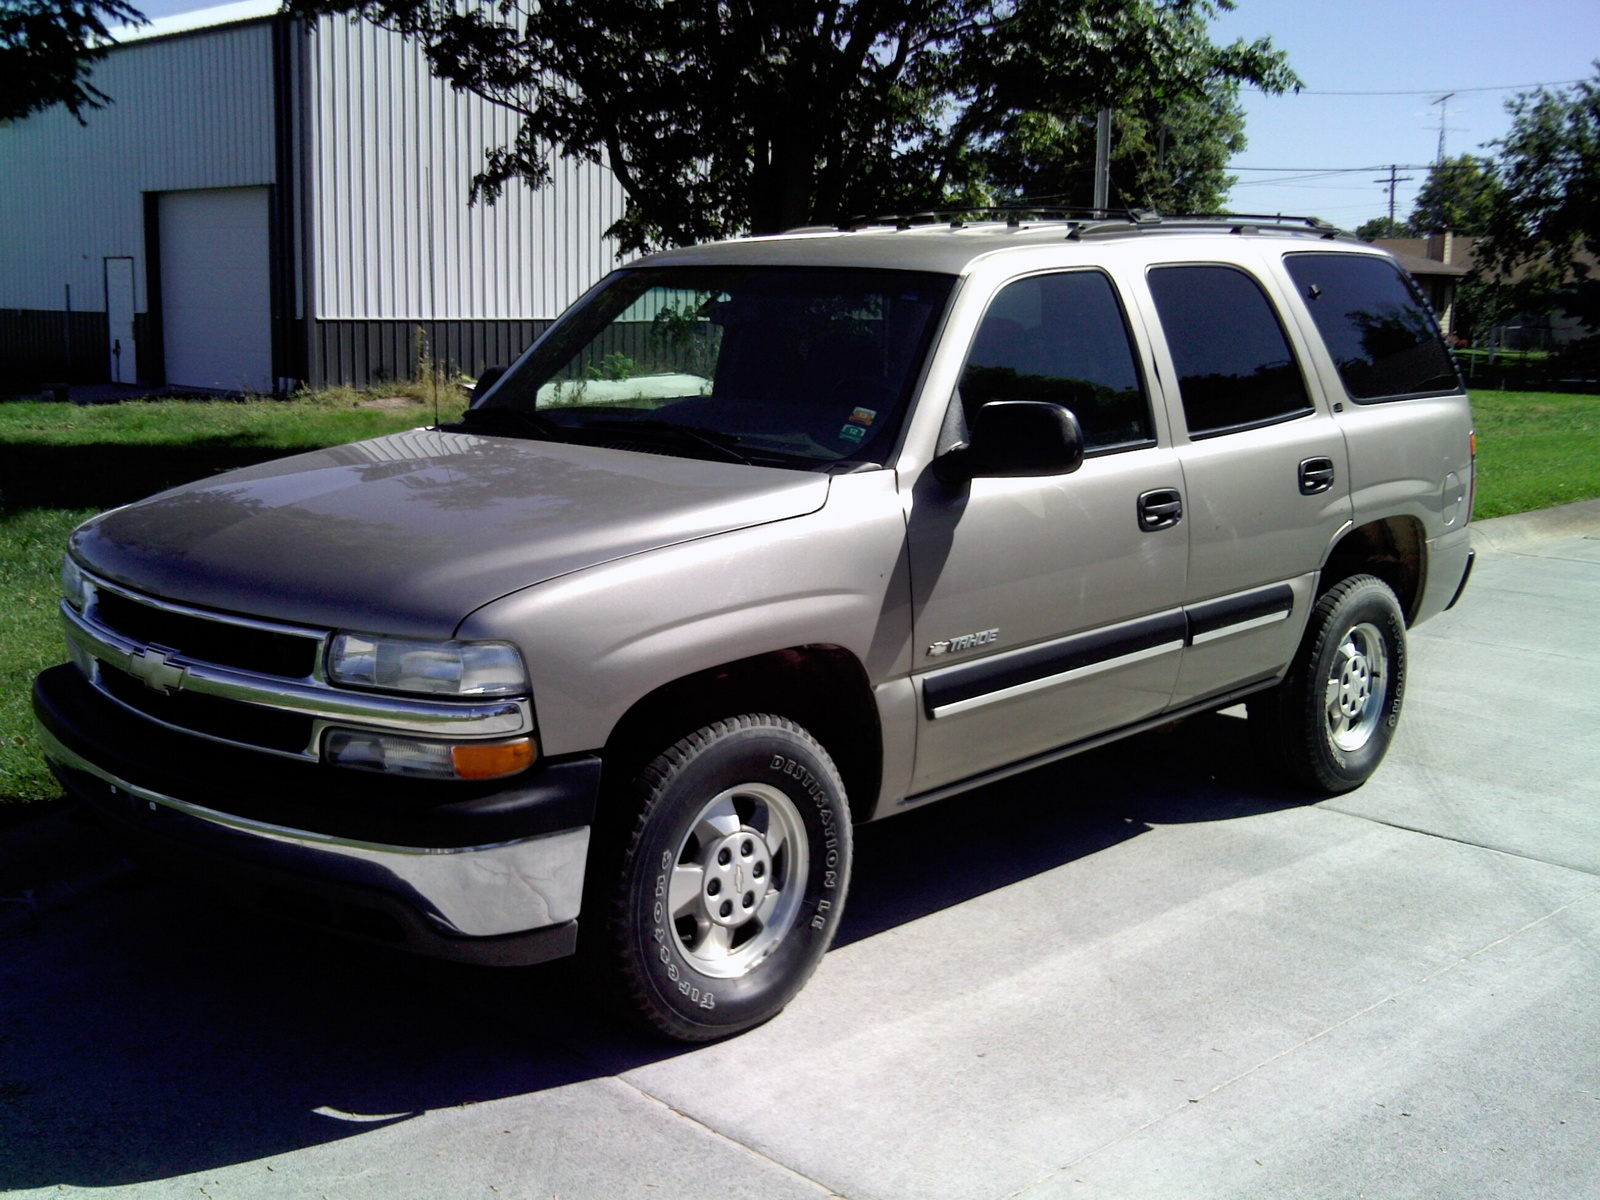 2001 chevrolet tahoe pictures cargurus. Black Bedroom Furniture Sets. Home Design Ideas